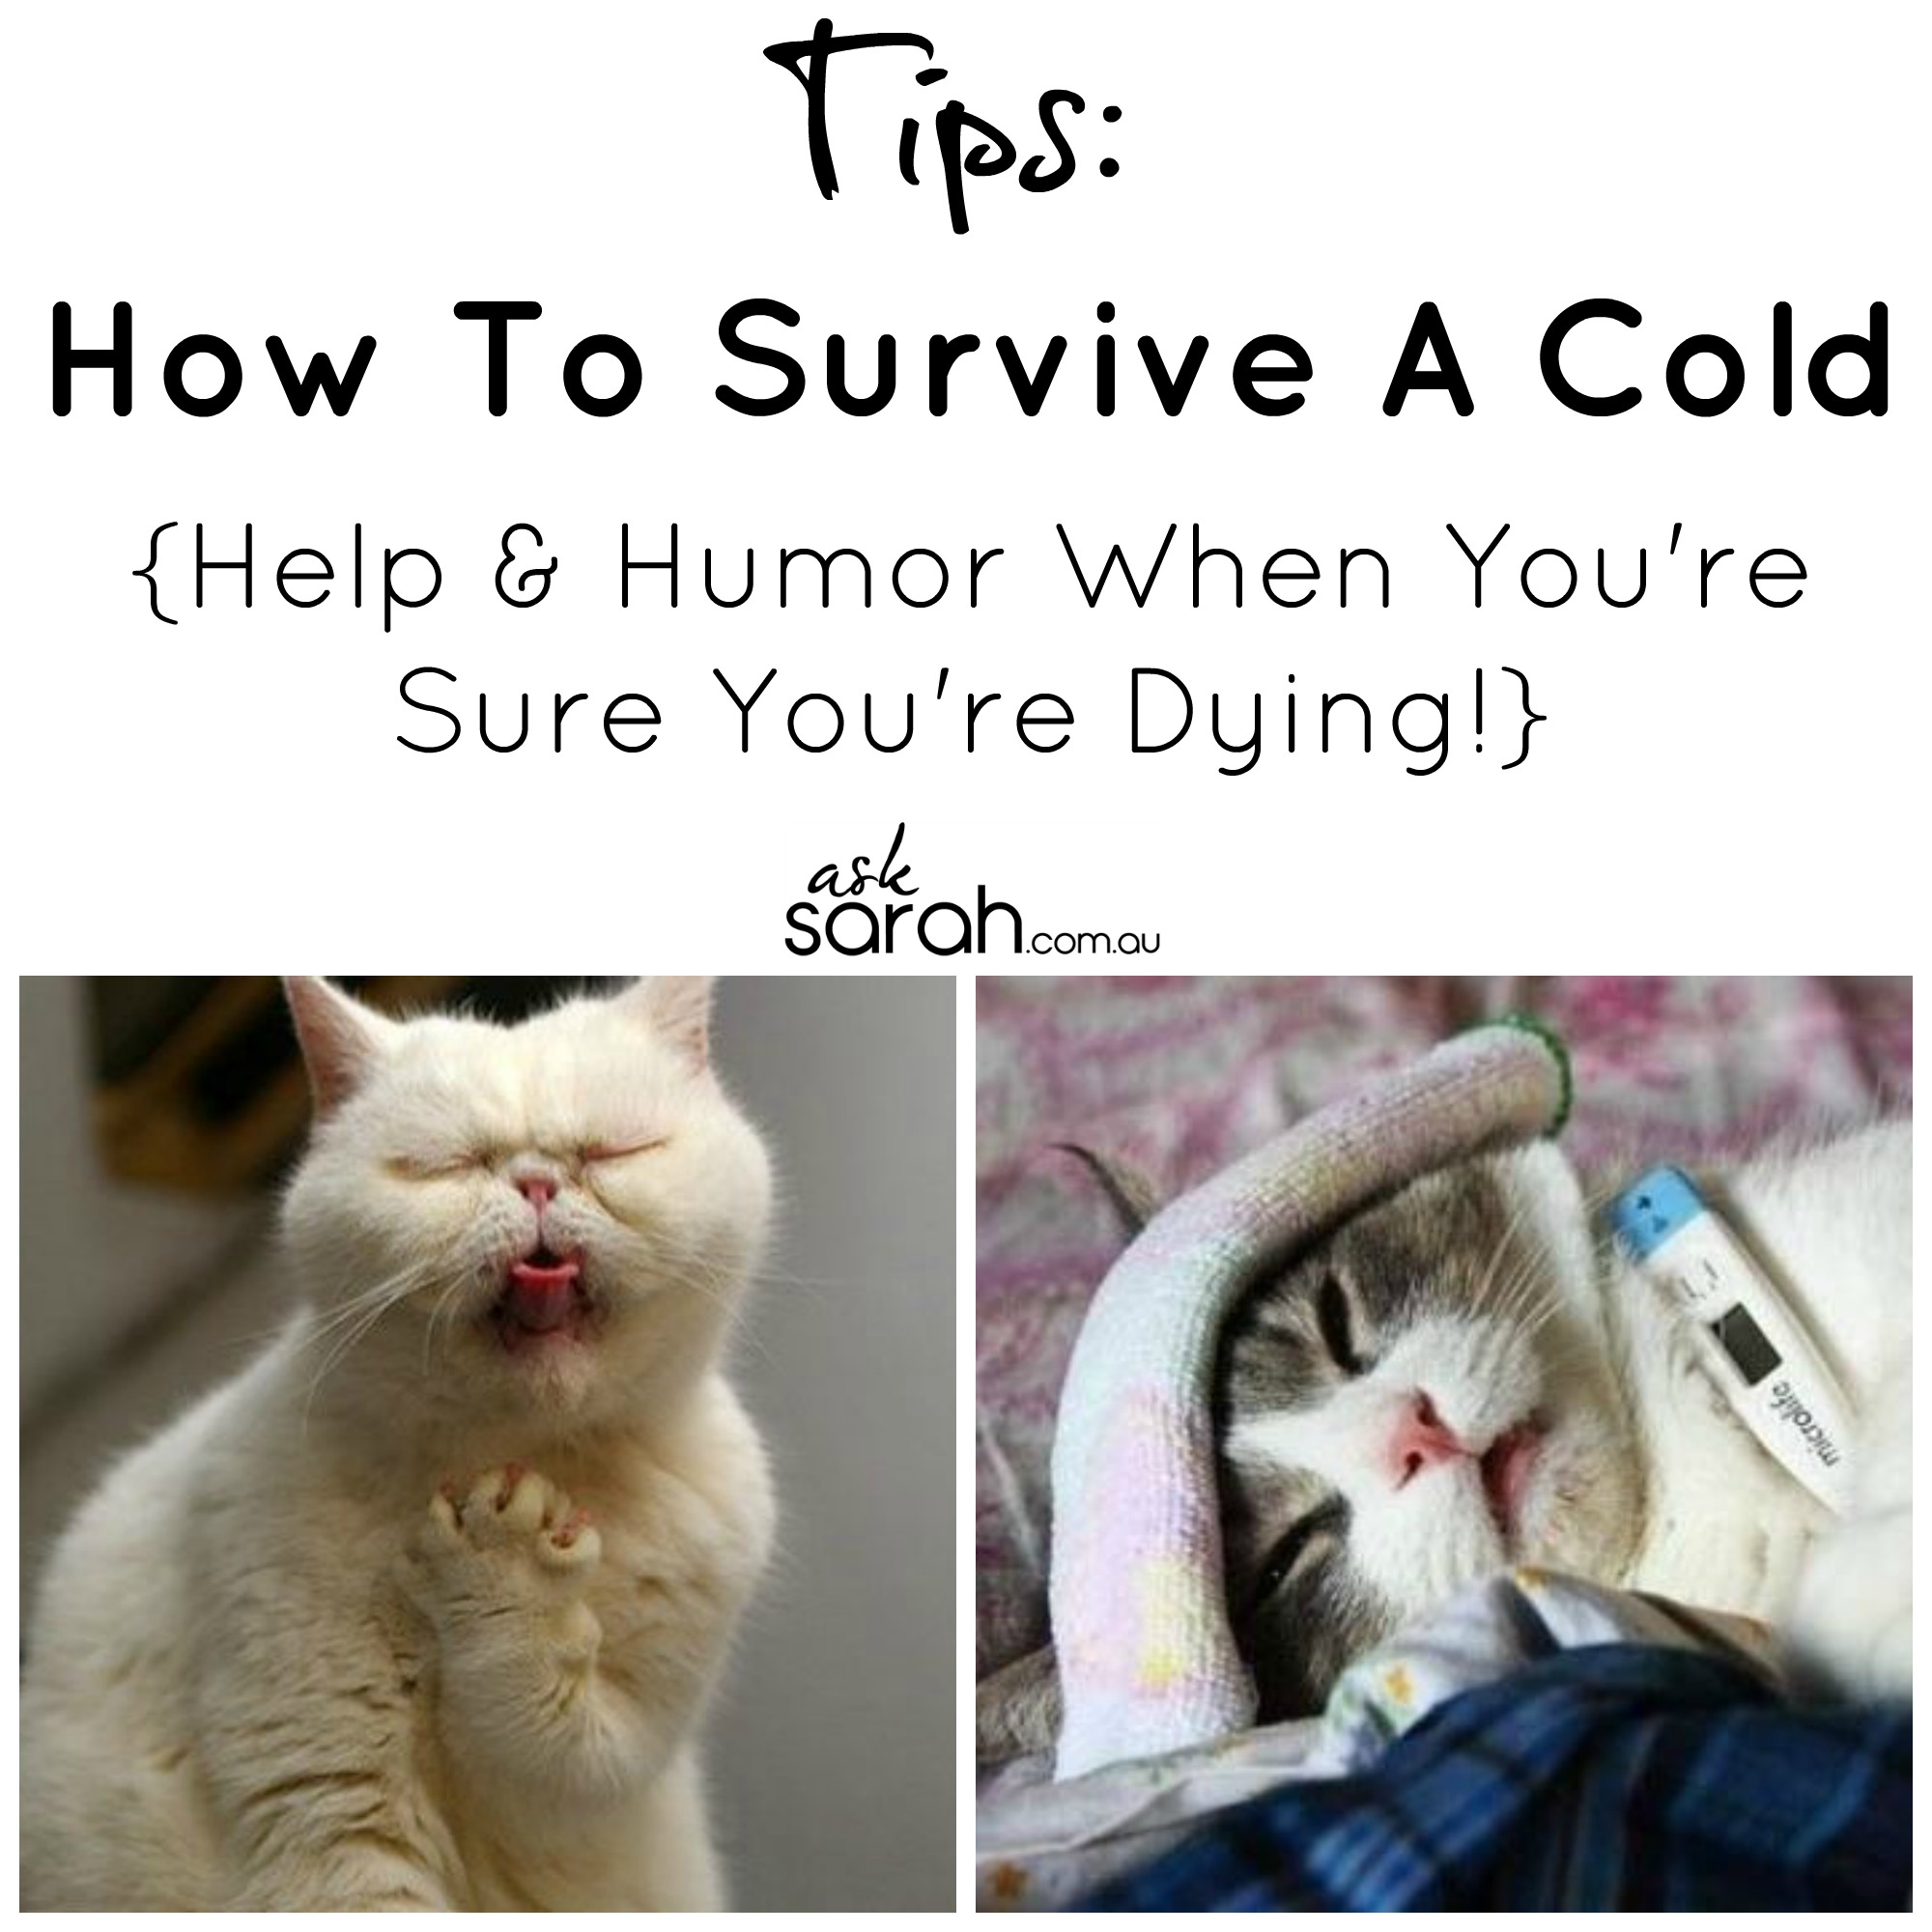 How To Survive A Cold {Help & Humor When You're Sure You're Dying!}